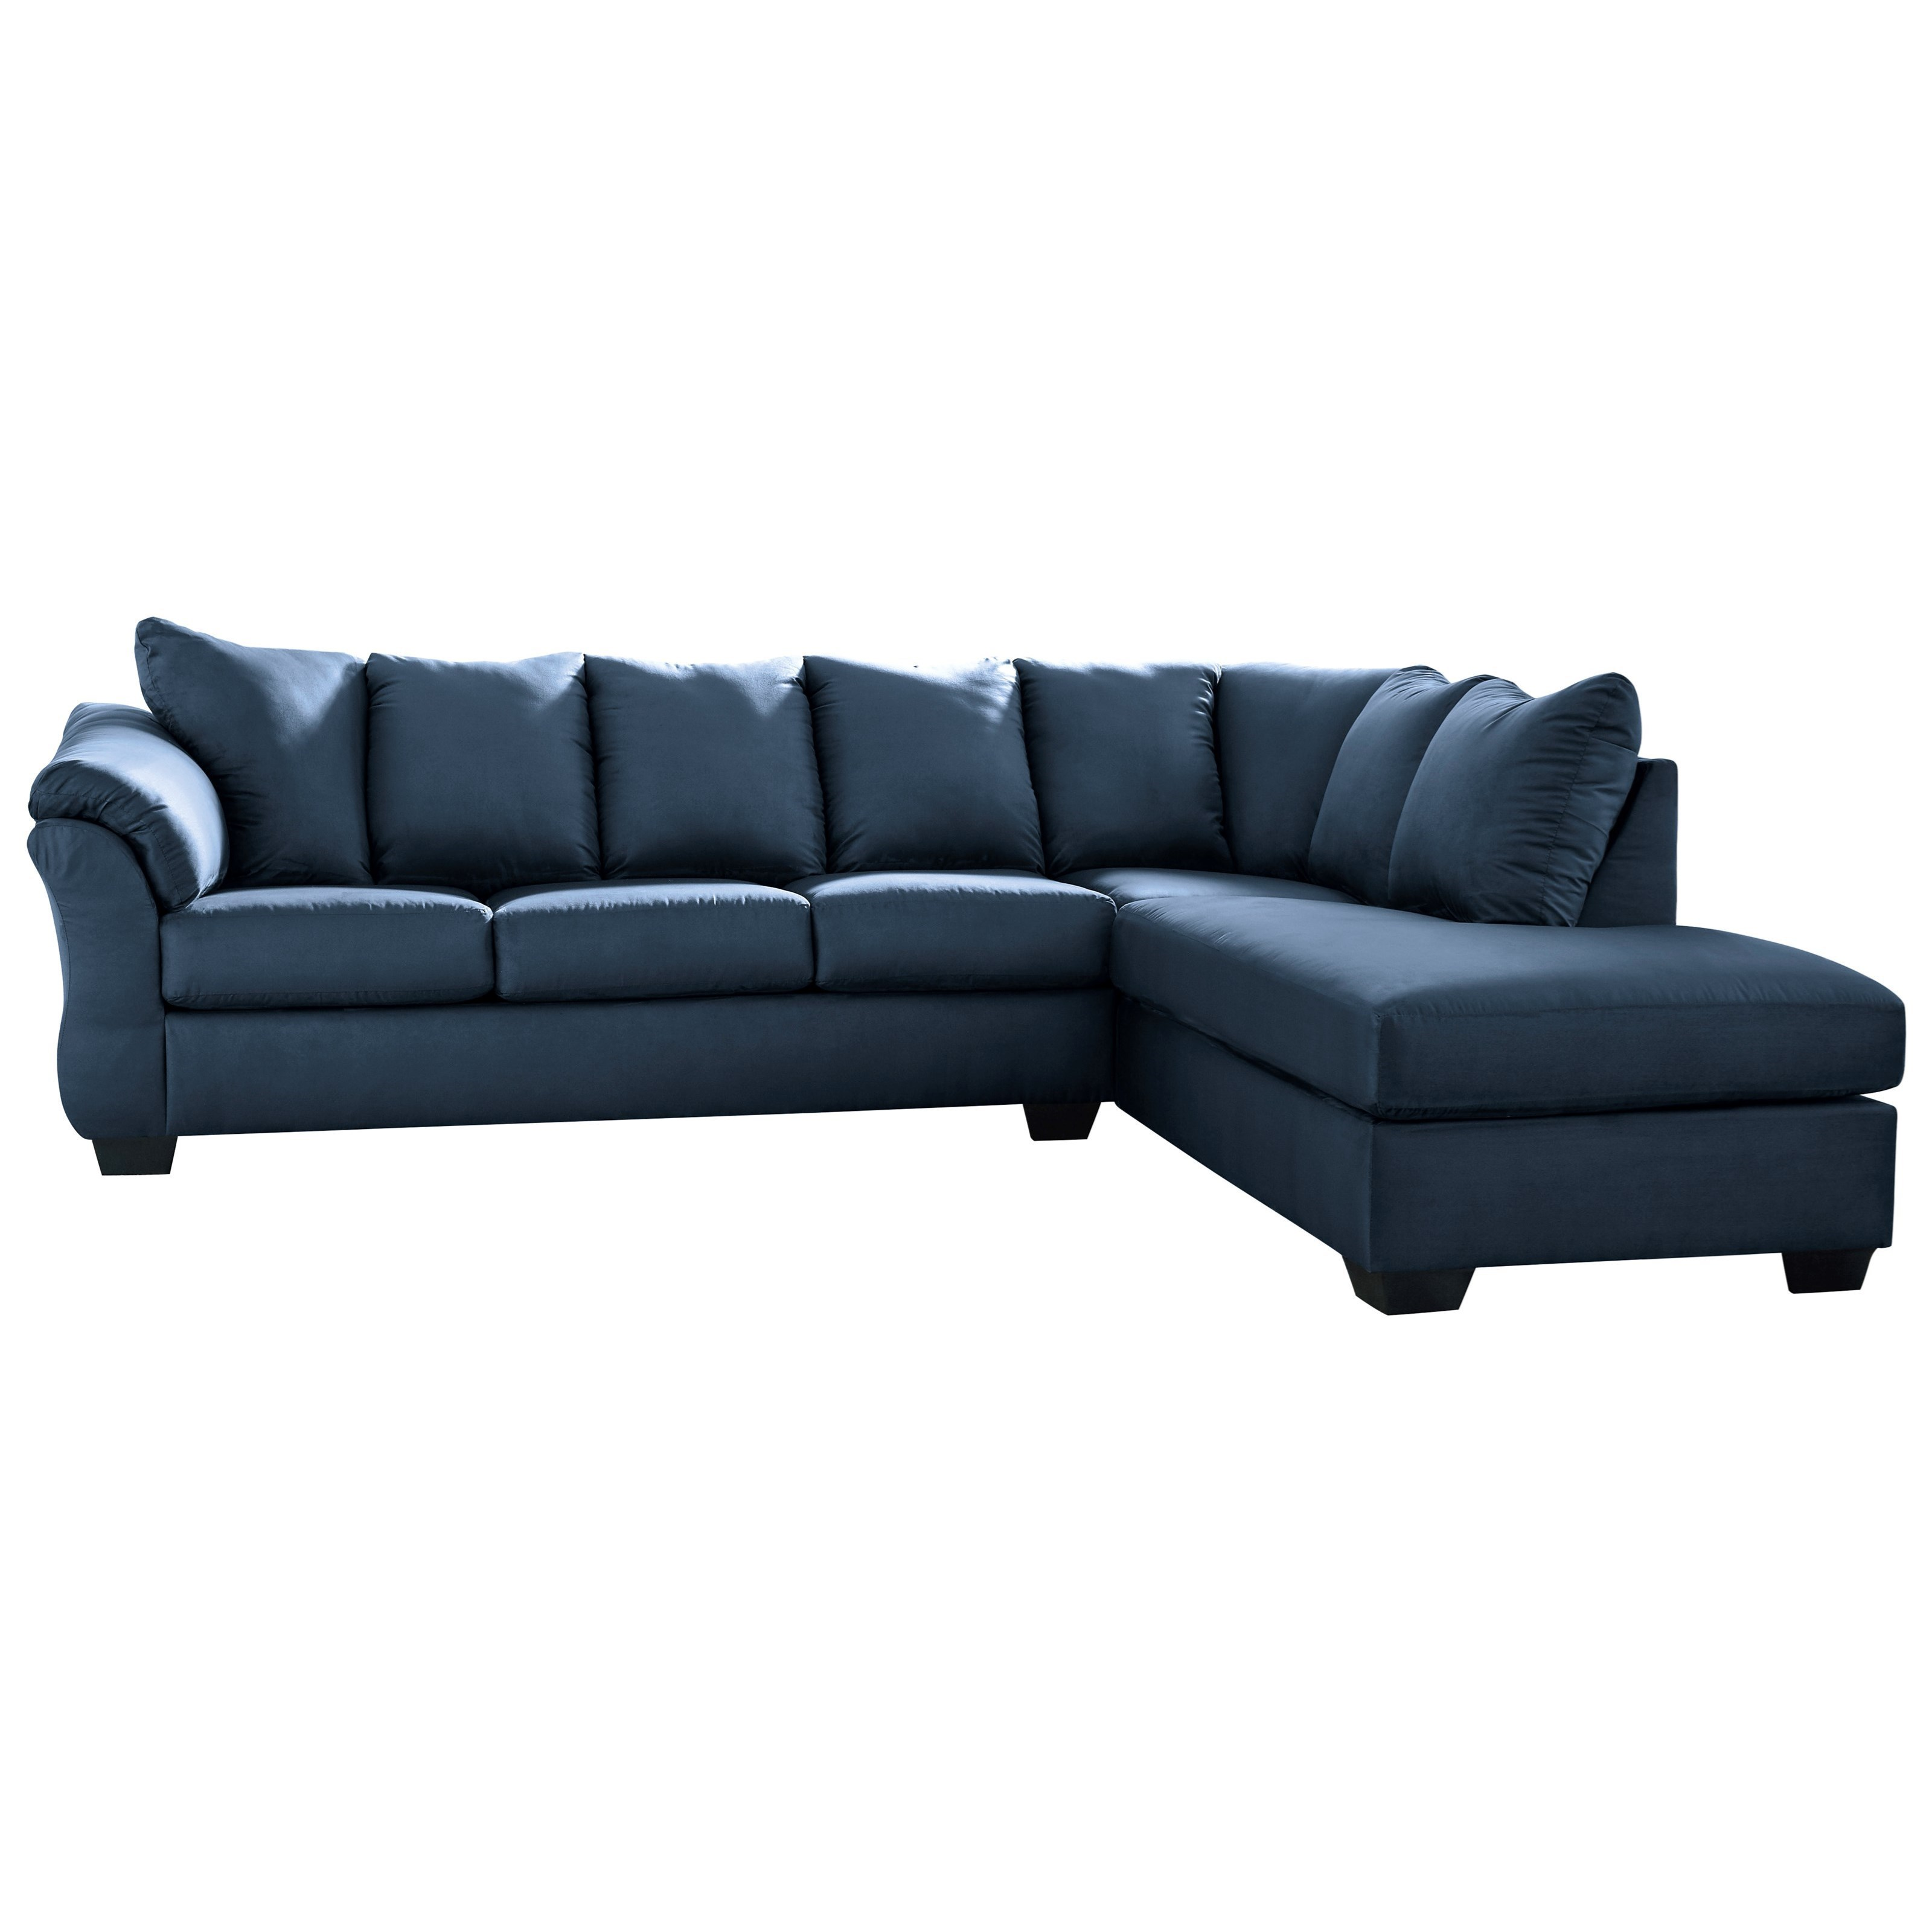 Signature Design By Ashley Darcy Blue Contemporary 2 Piece Sectional Sofa With Right Chaise Royal Furniture Sectional Sofas